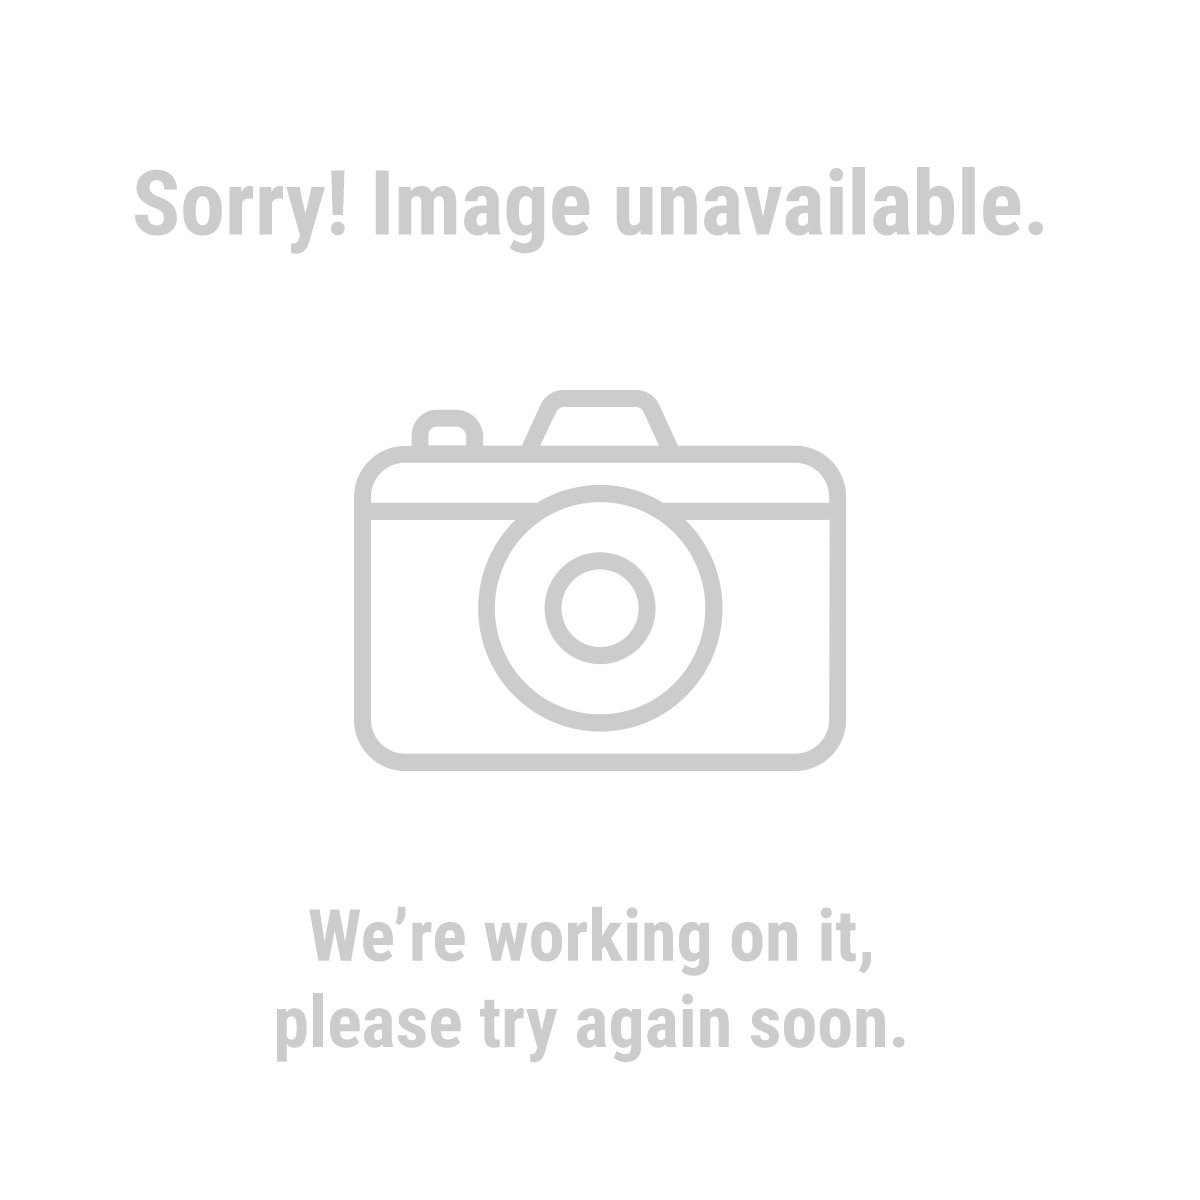 Luminar Work 47410 Dual Head Pivoting Work Light With Stand